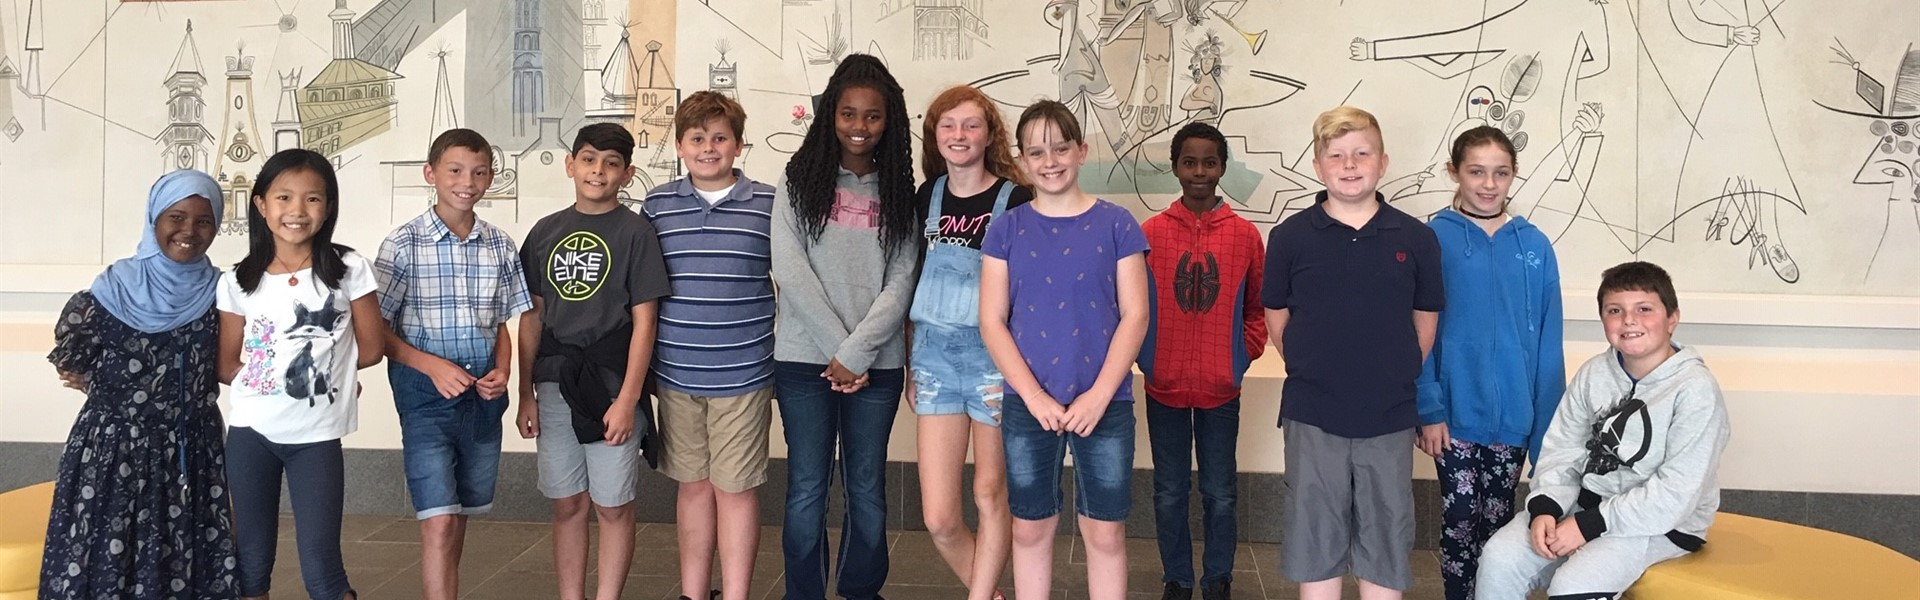 5th Grade Art Museum Field Trip